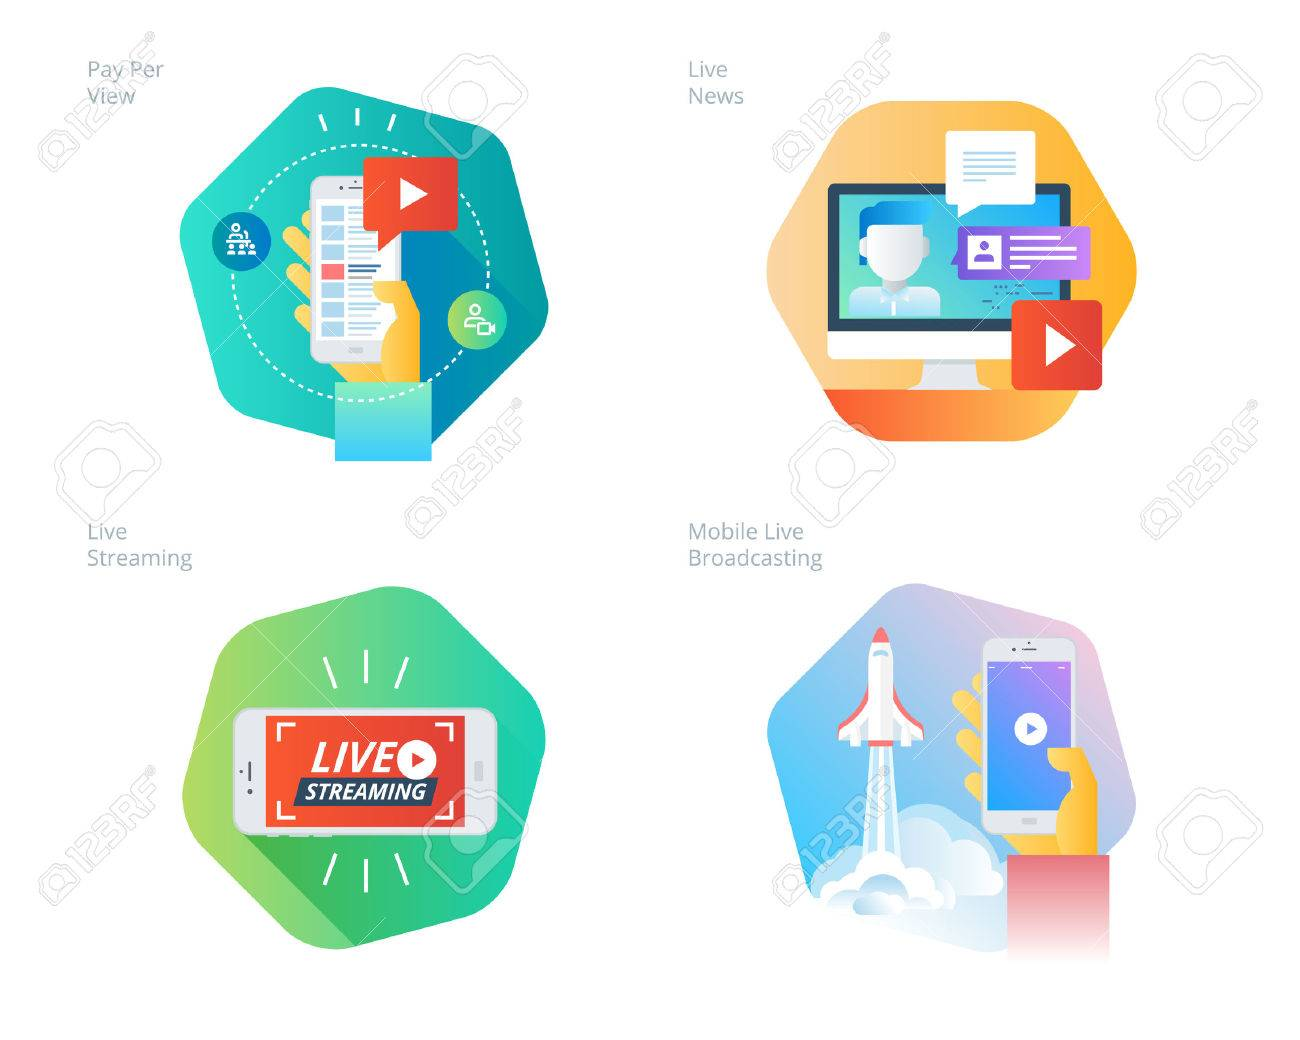 Material design icons set for live streaming, mobile broadcasting,